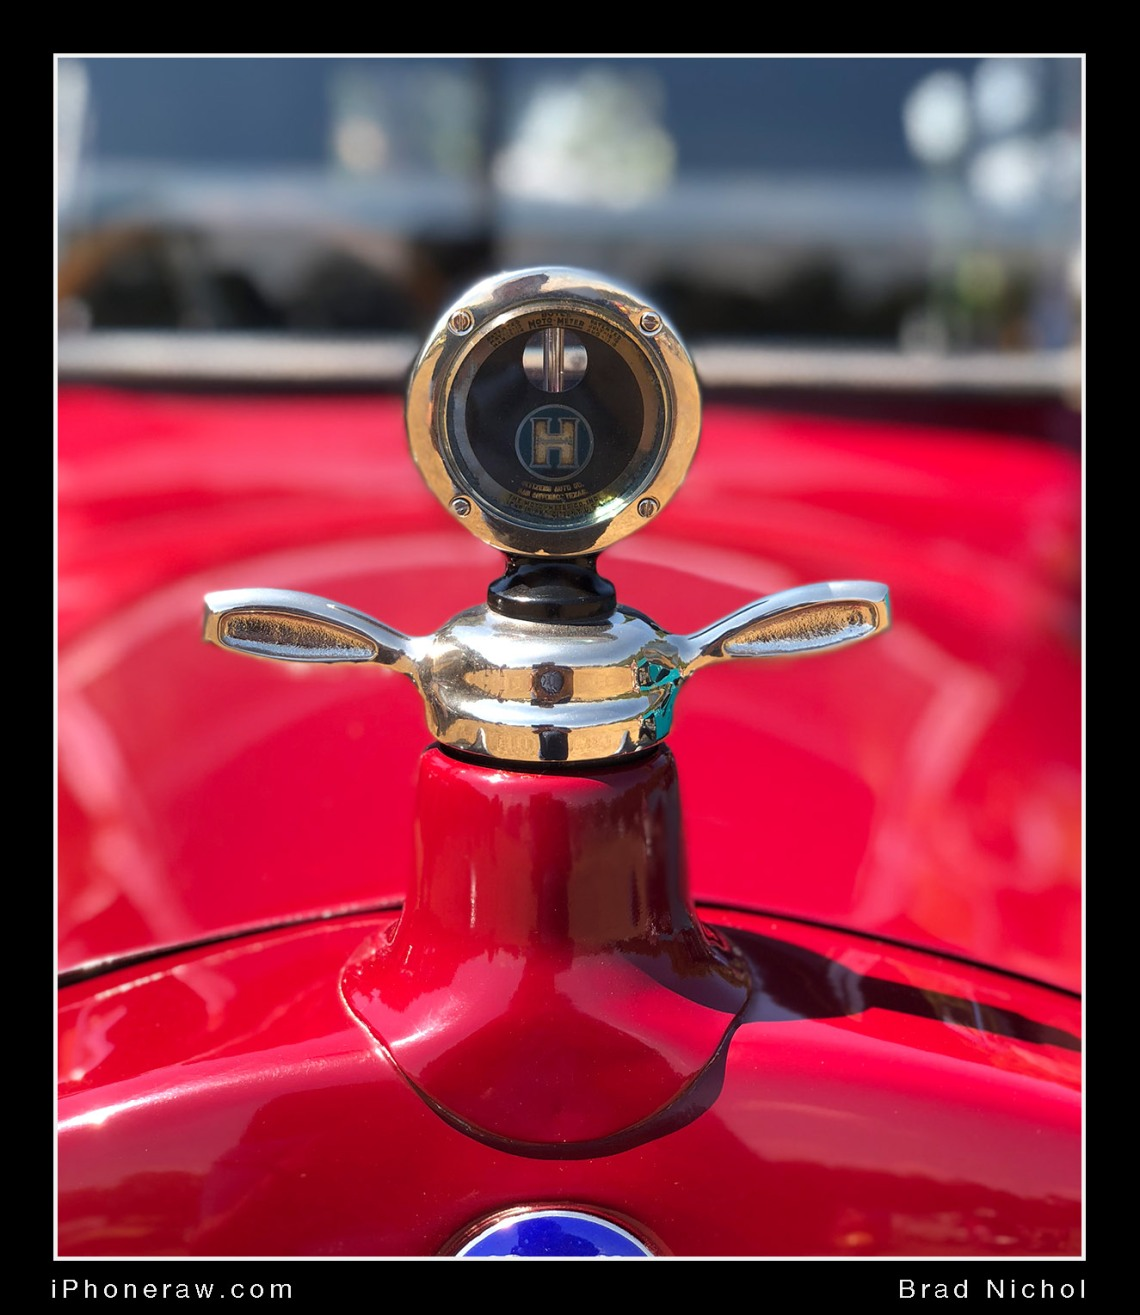 Radiator gauge on antique vehicle, red, iphone X portrait mode, good result, nice background blur, hupmobile.